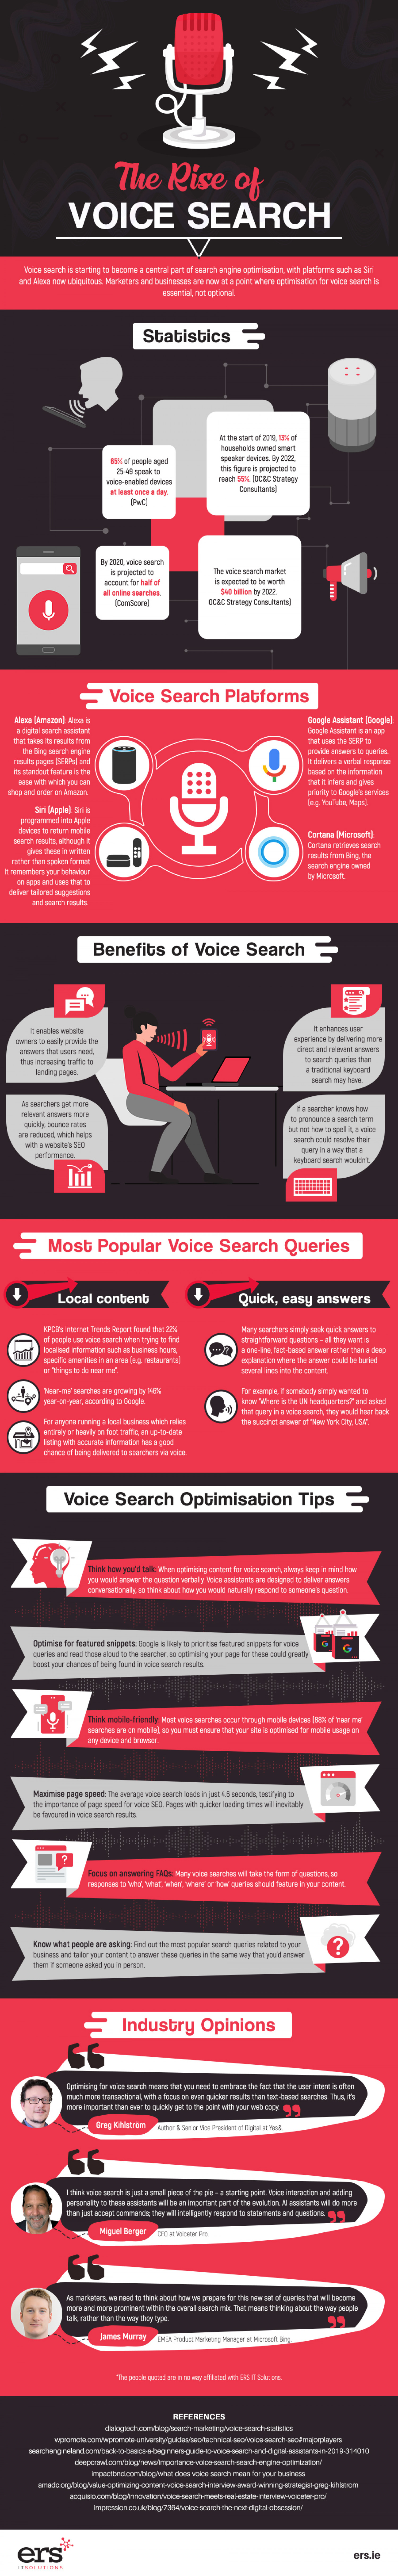 The Rise of Voice Search - infographic